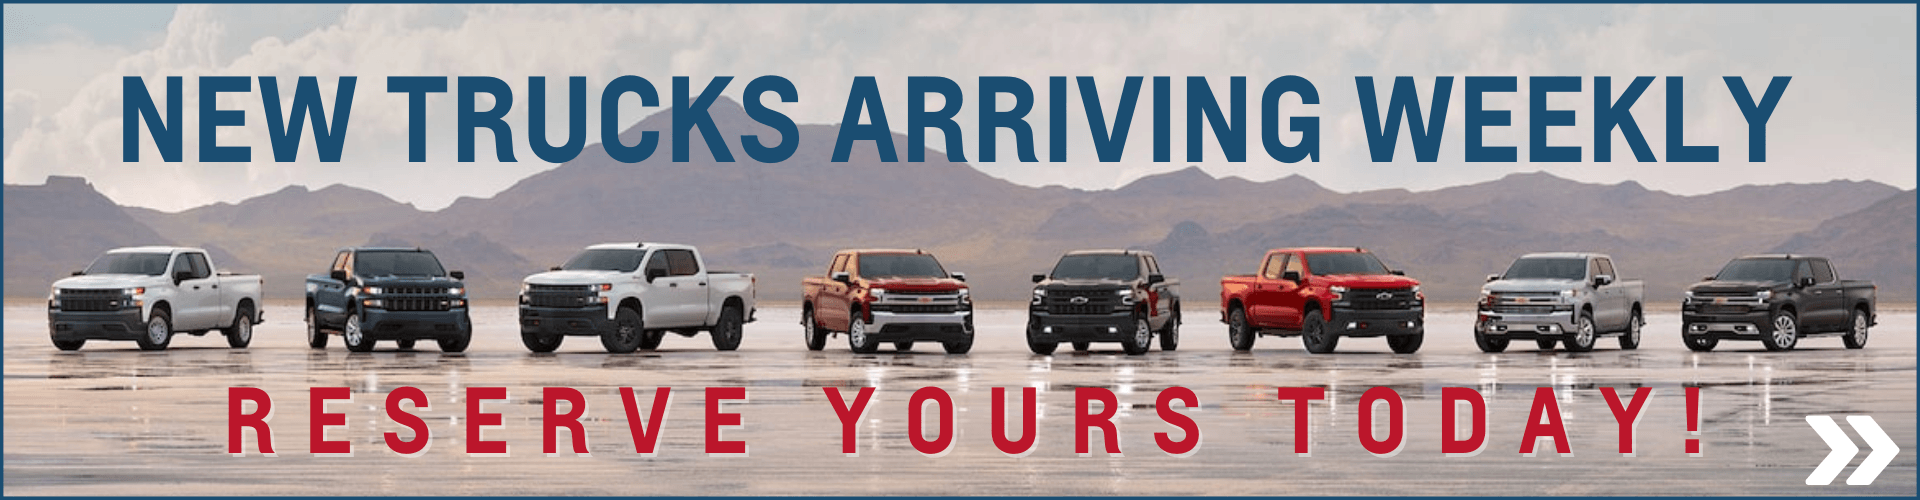 Low Truck inventory reserve yours